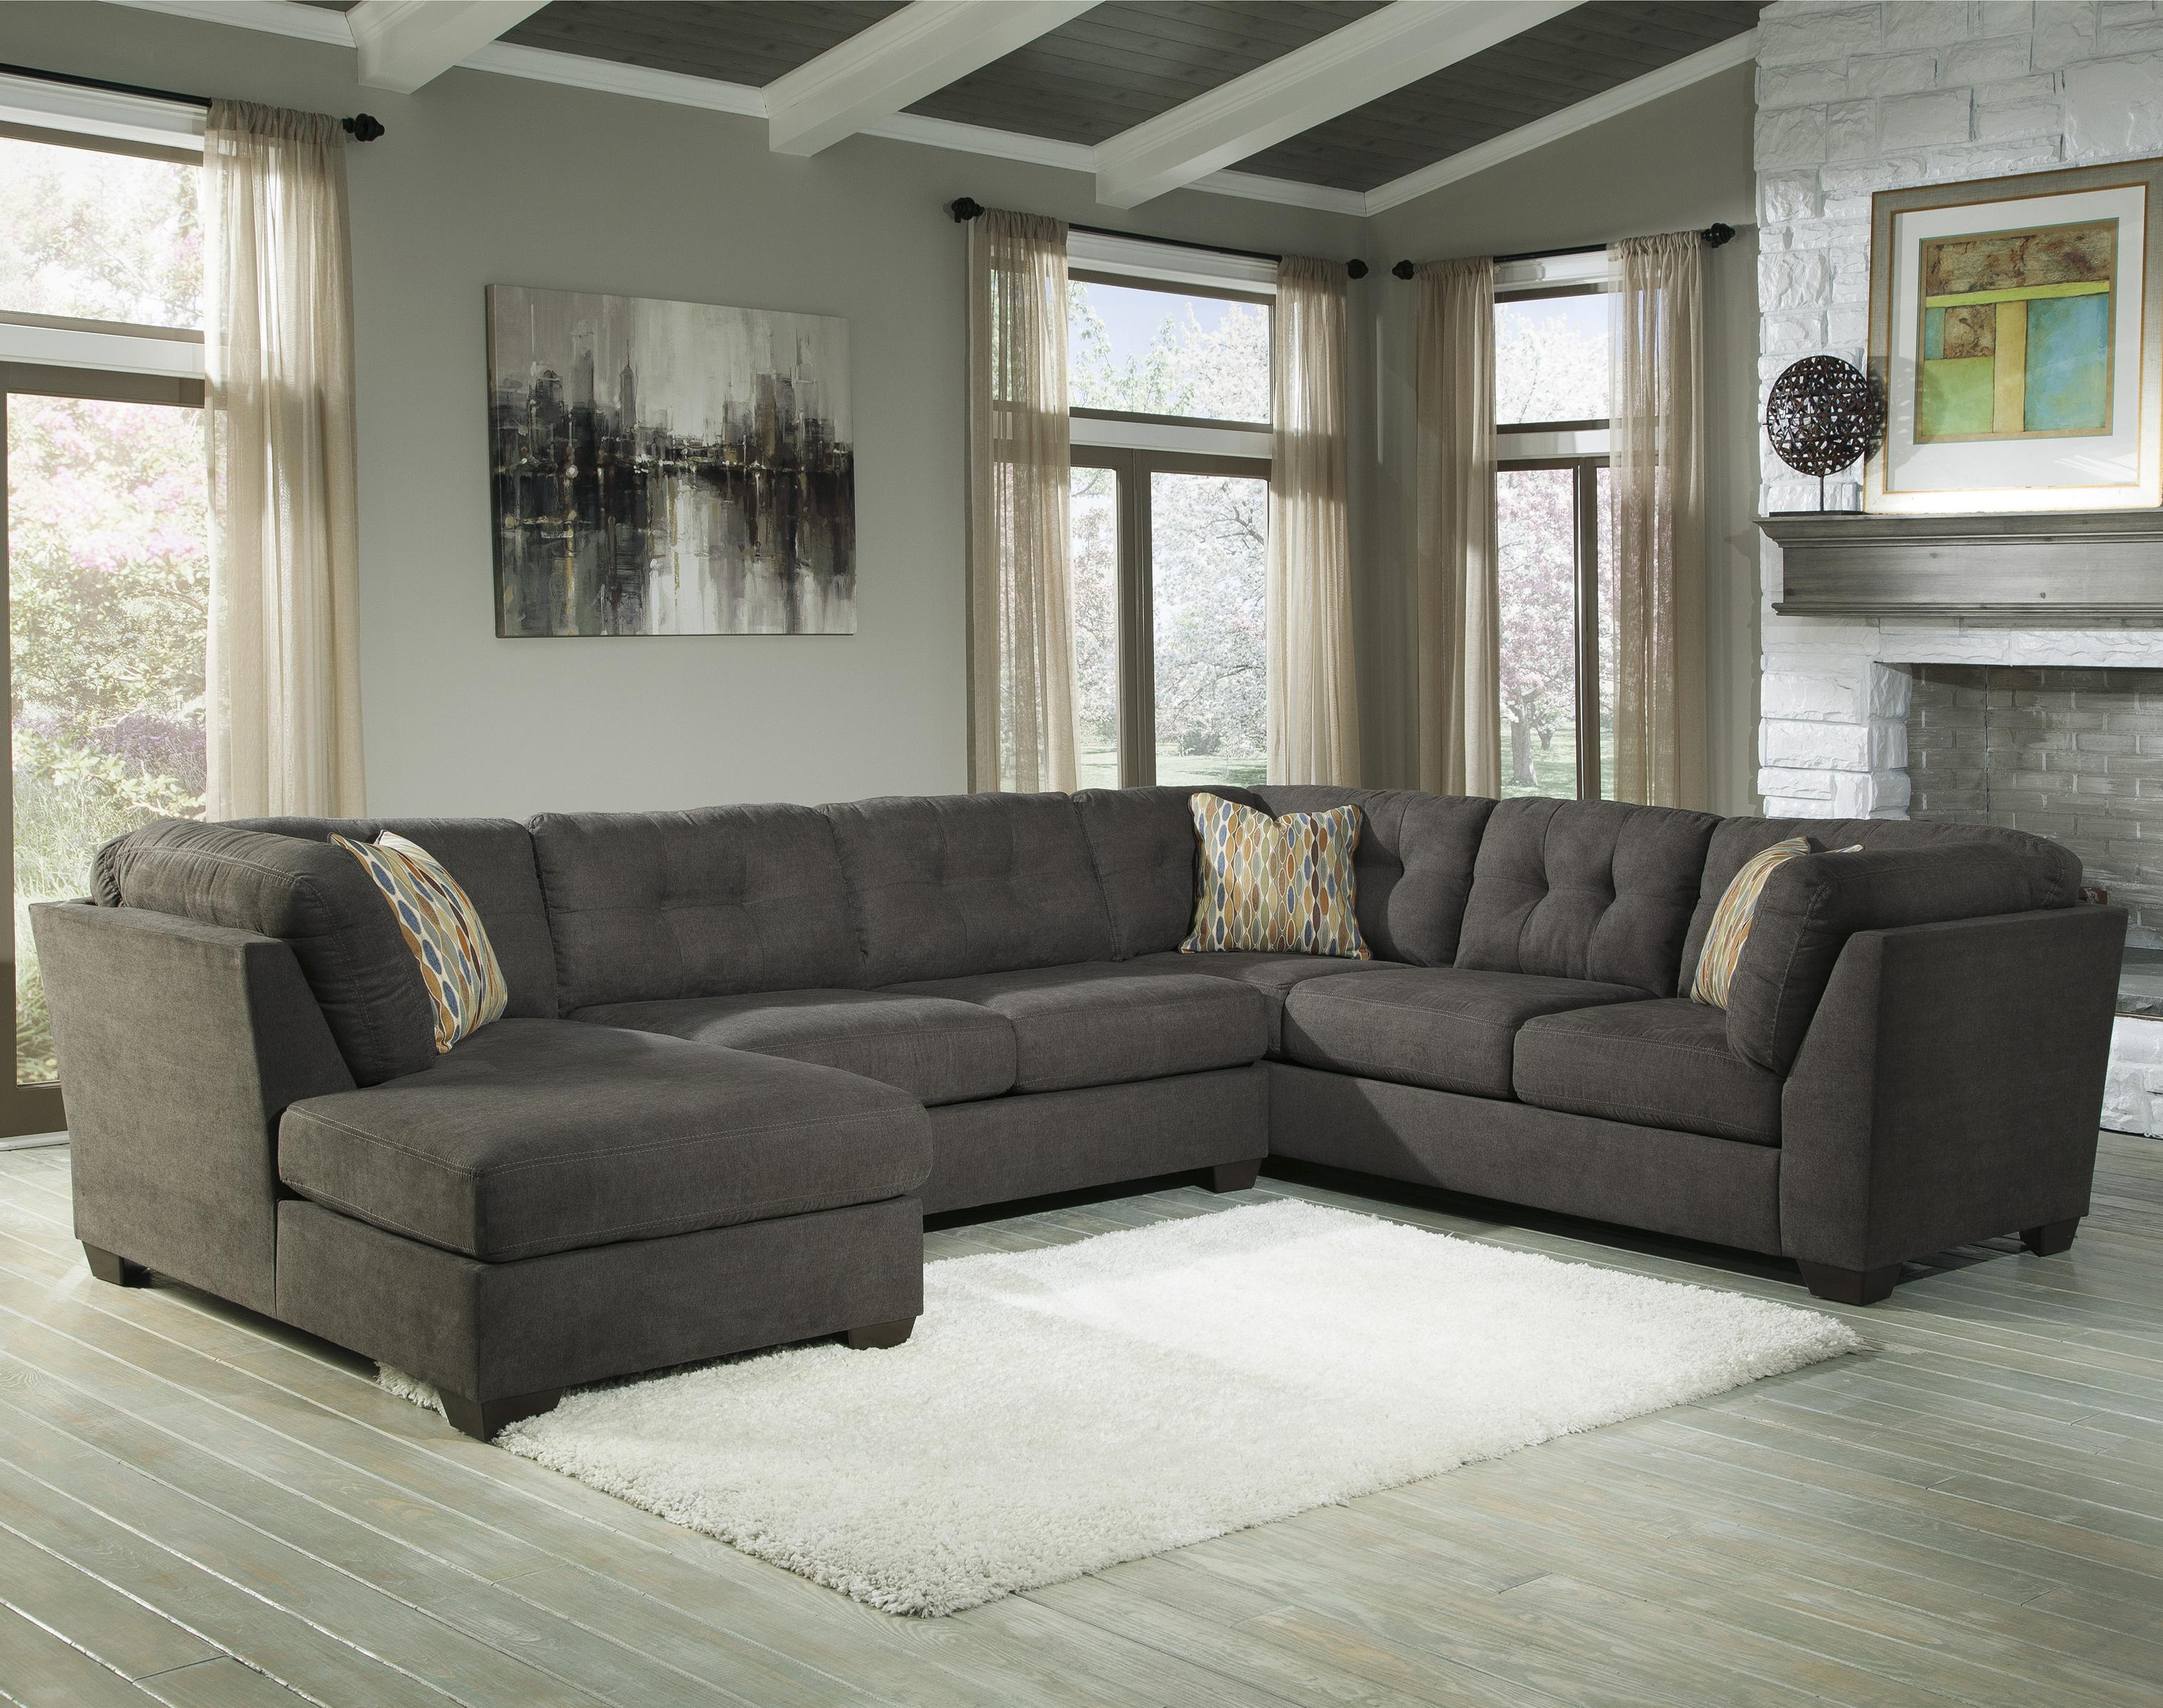 Ashley/Benchcraft Delta City - Steel 3-Piece Modular Sectional with Left Chaise - Item Number: 1970016+34+38